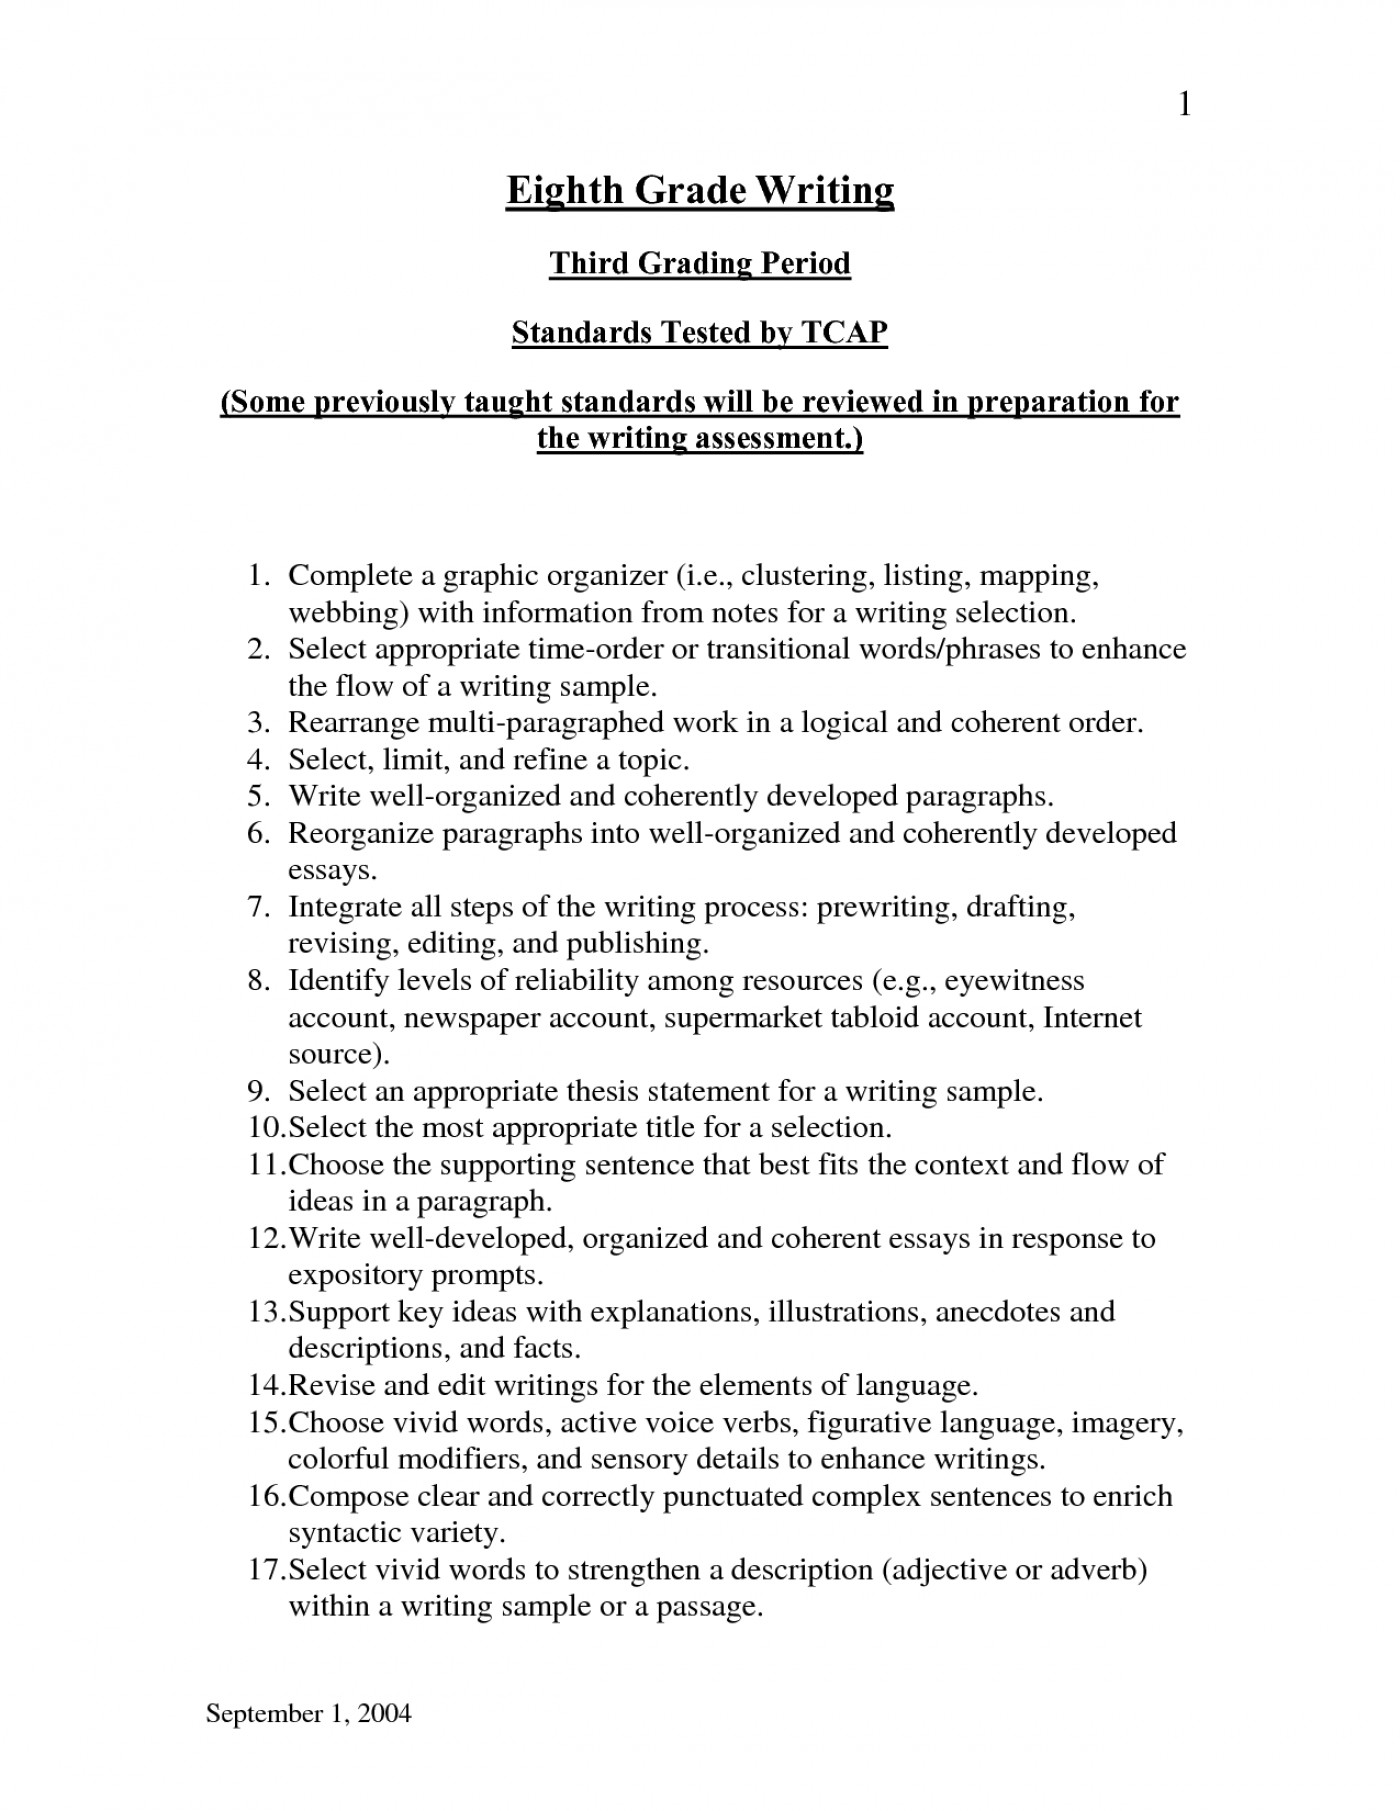 012 Essay Example What Is An Expository Writing Prompts For High School 1088622 Magnificent Gcu Examples 4th Grade 1400